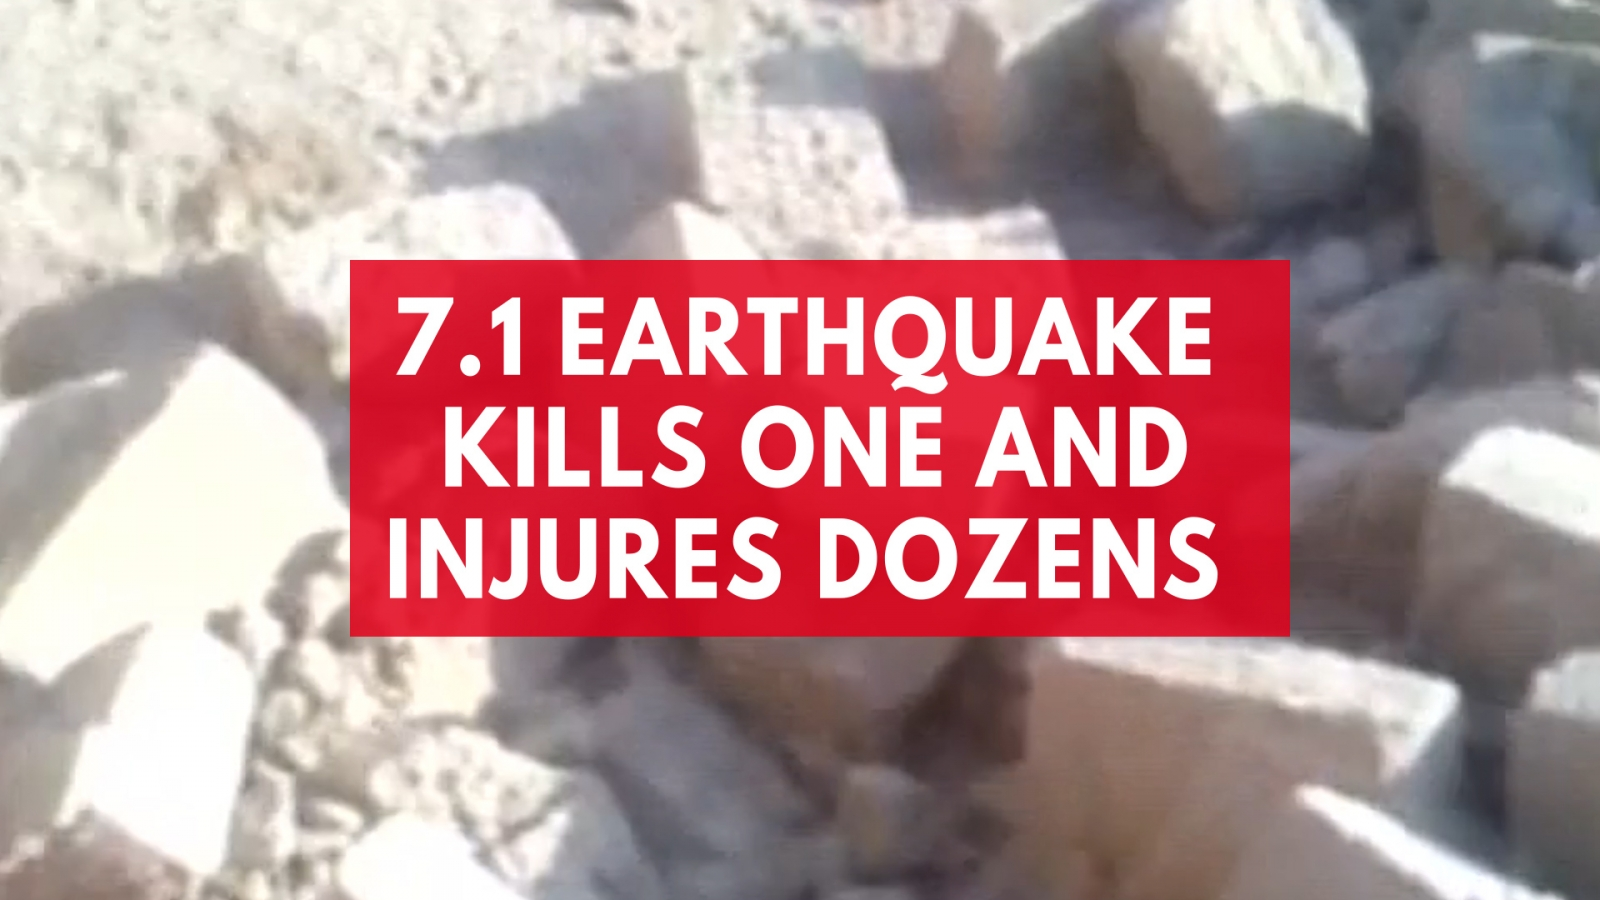 one-dead-and-dozens-injured-from-7-1-magnitude-earthquake-in-peru